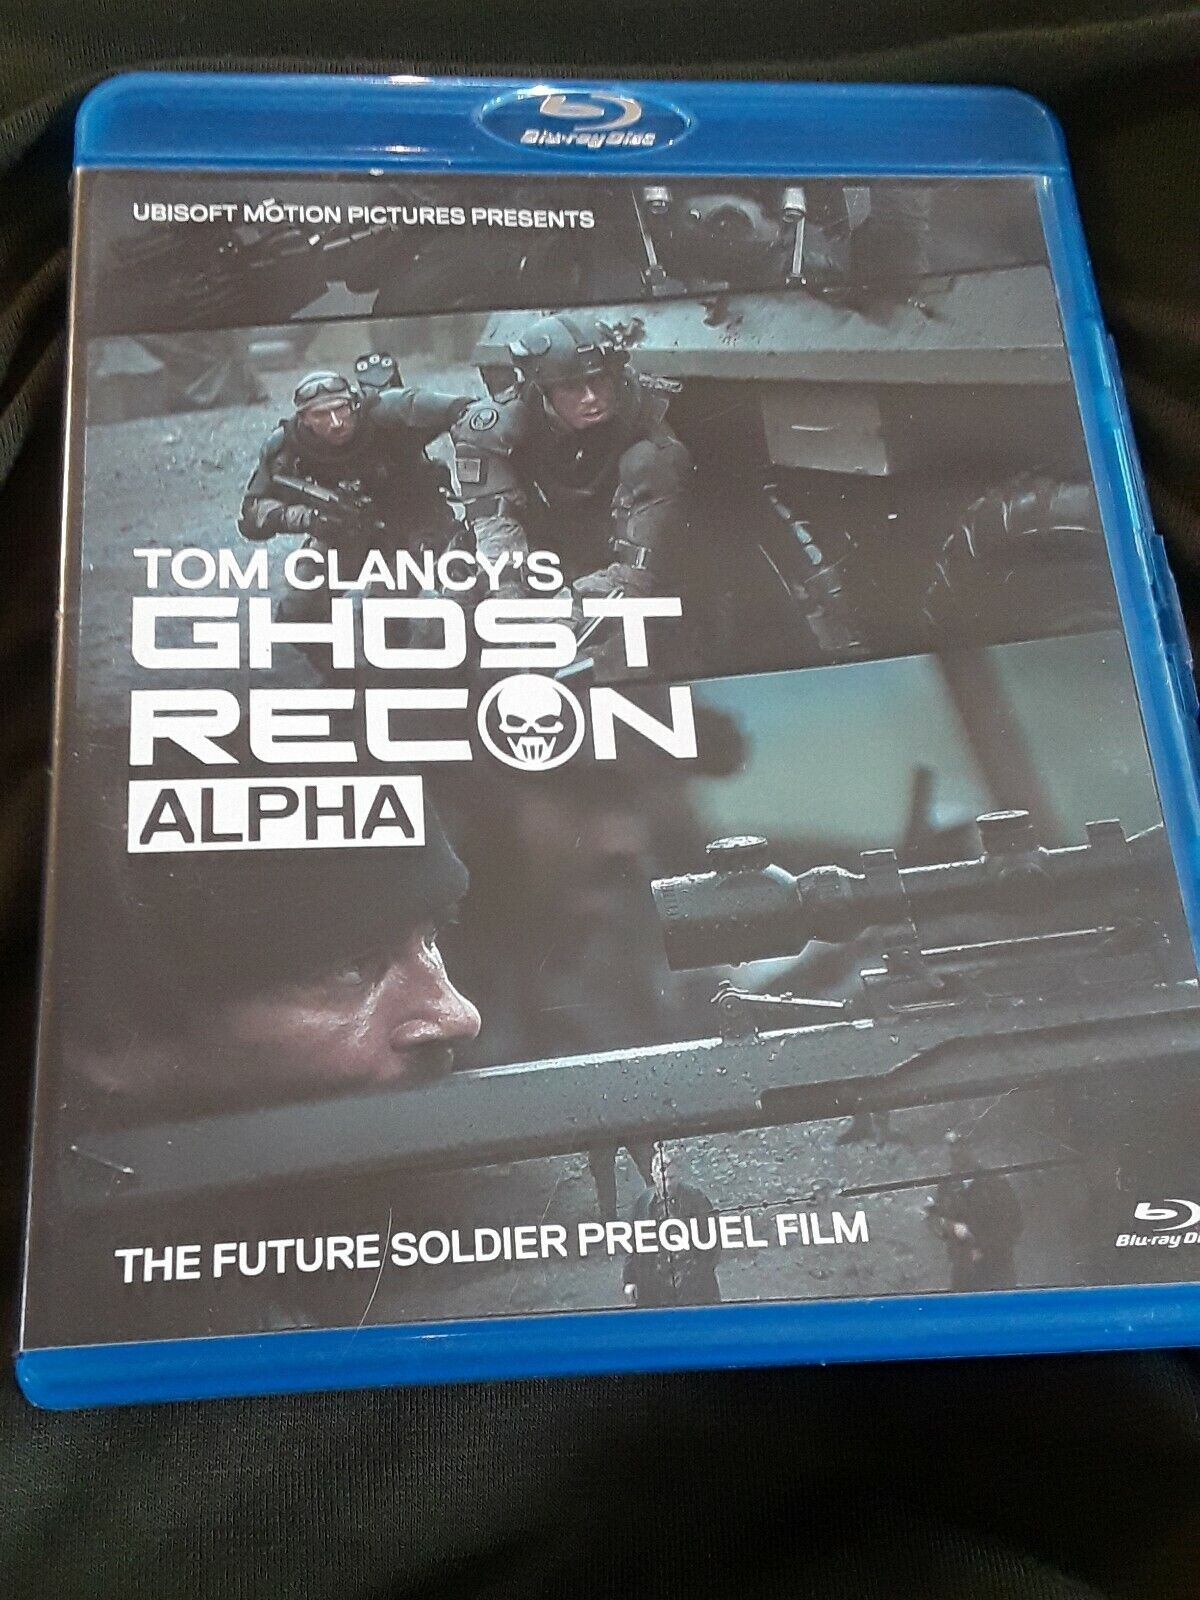 Tom Clancys Ghost Recon Alpha Blu Ray Disc 2012 2 Disc Set For